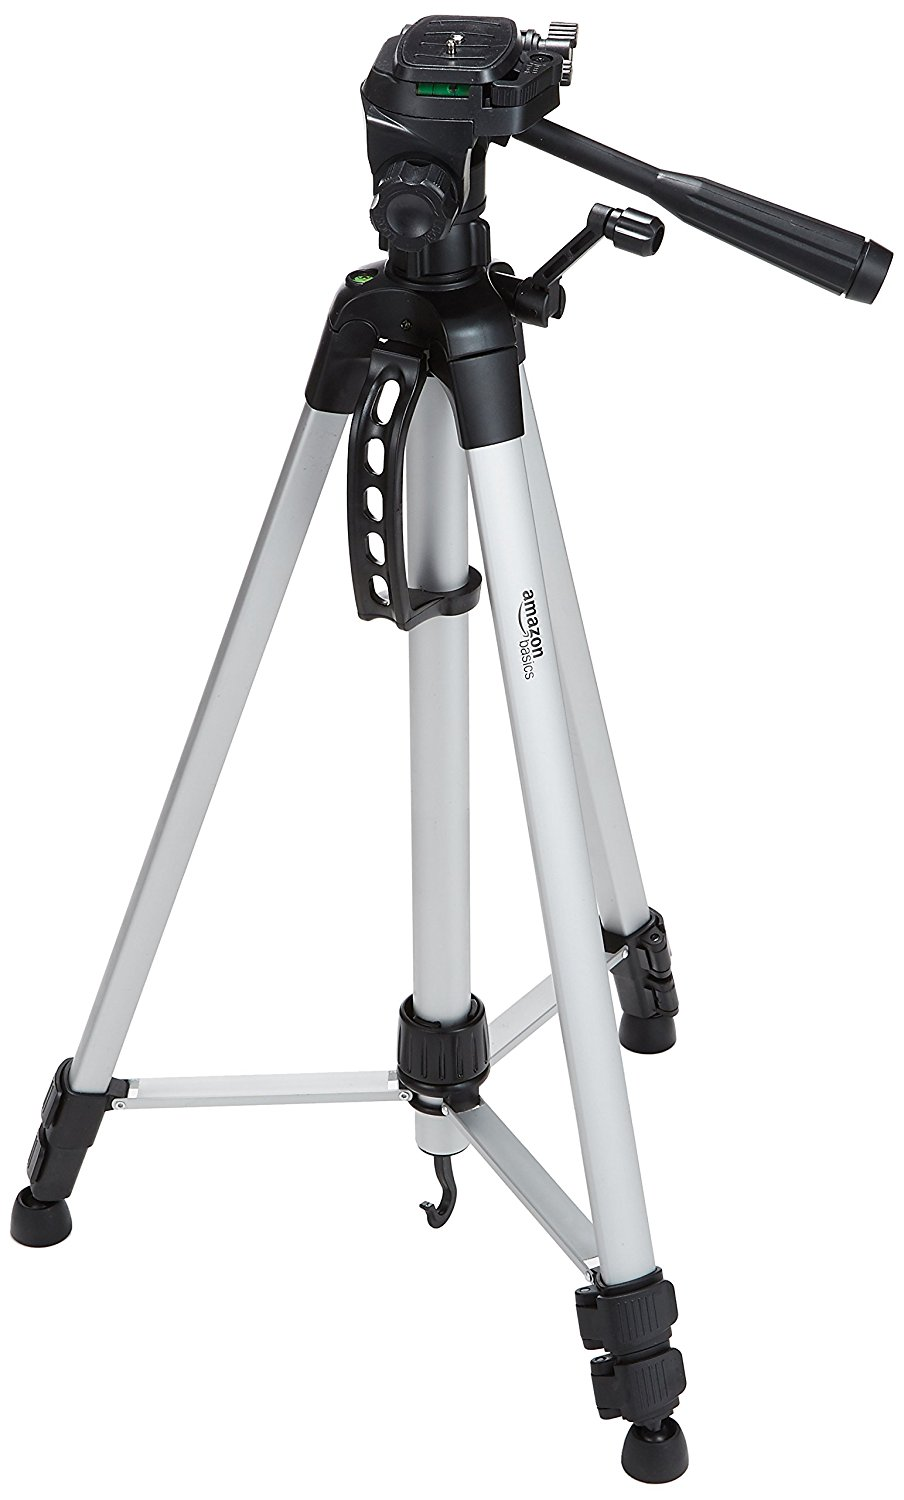 Tripod for my small camera